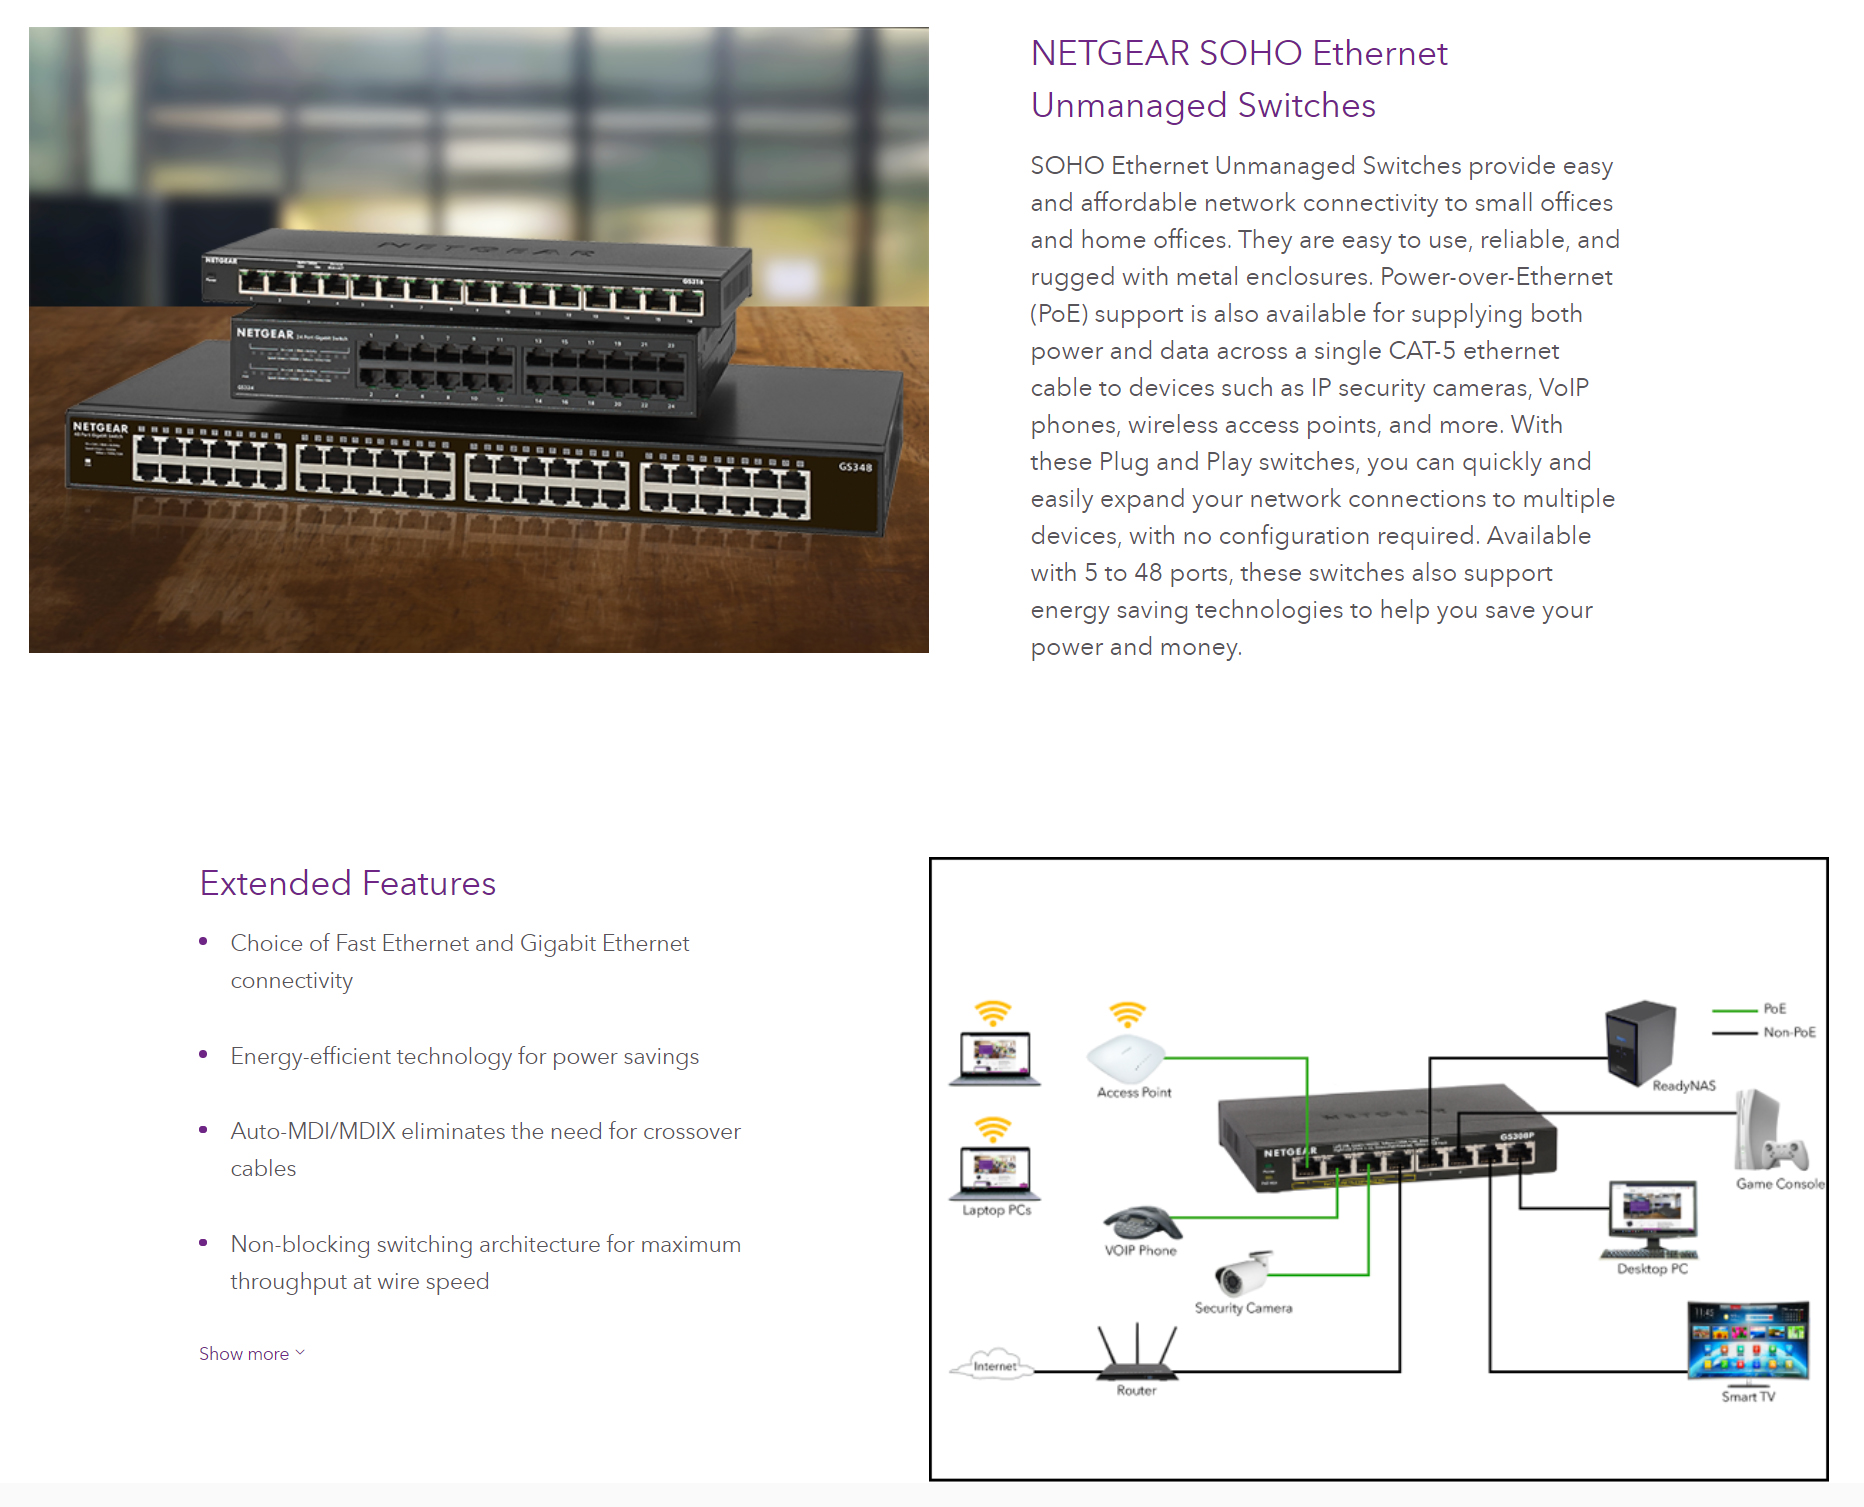 screencapture-netgear-au-home-products-networking-switches-soho-ethernet-switches-gs348pp-aspx-2021-04-13-13_46_30.jpg